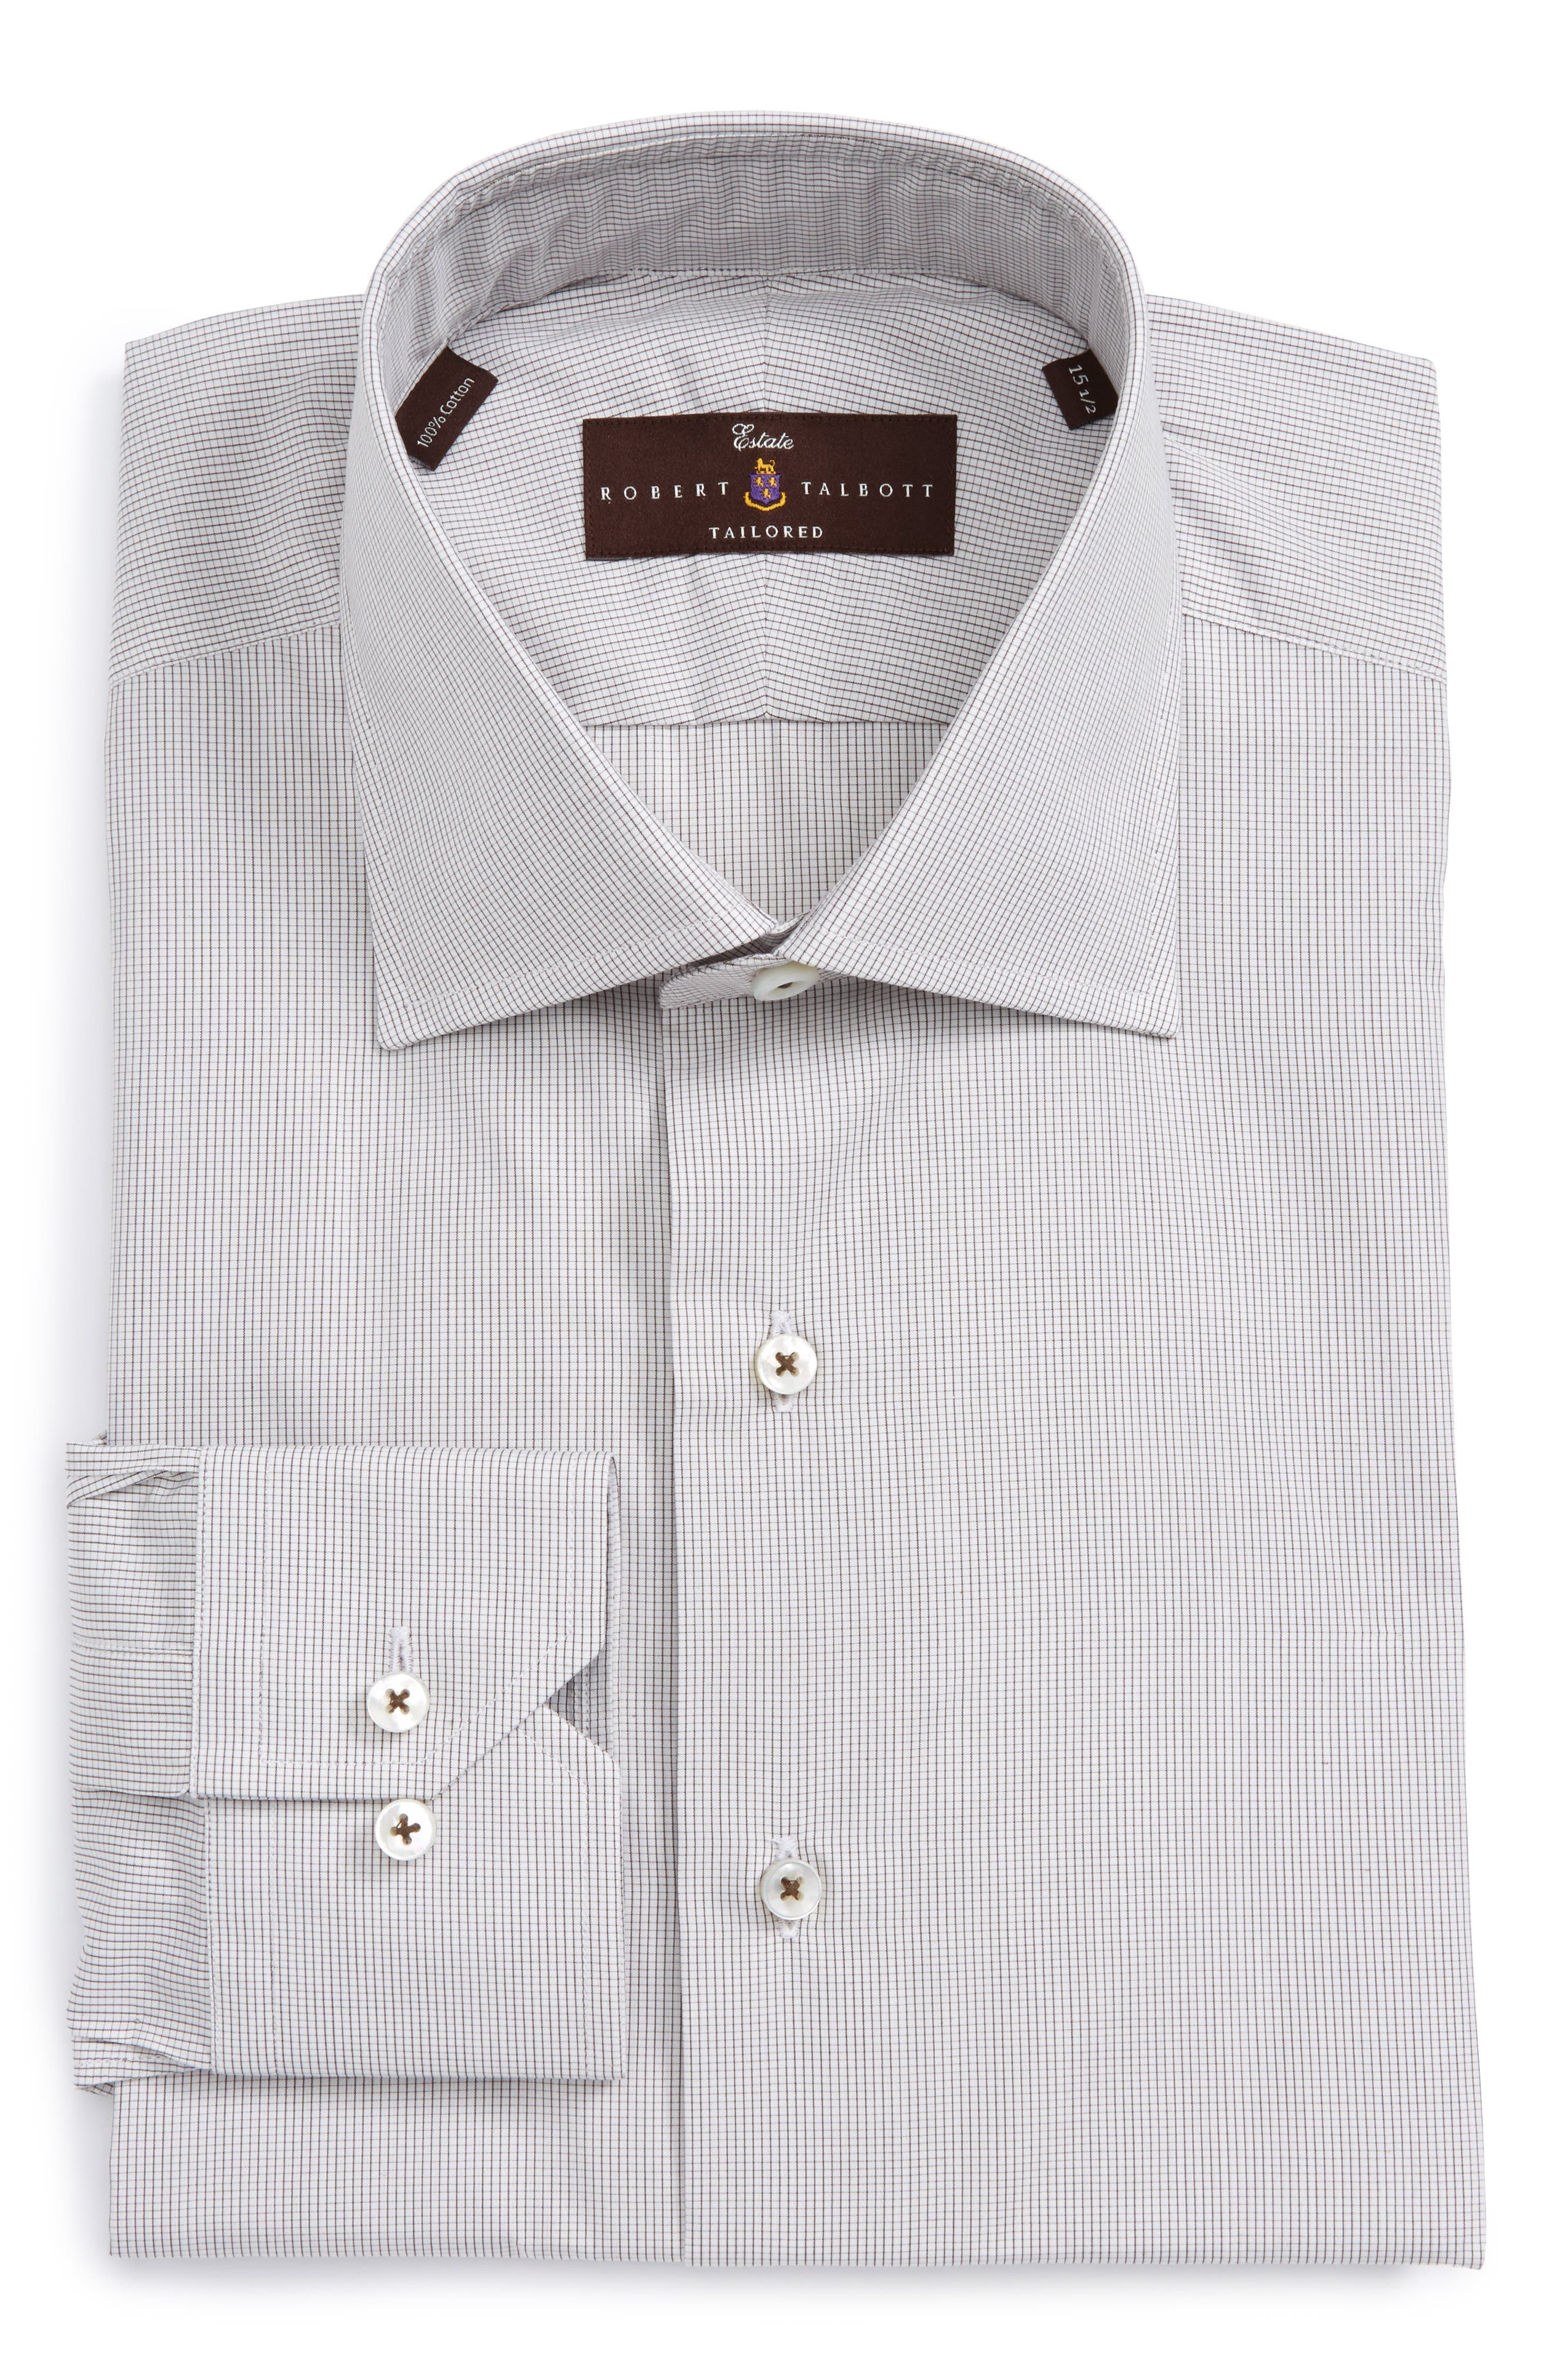 Robert Talbott Estate Tailored Fit Check Dress Shirt